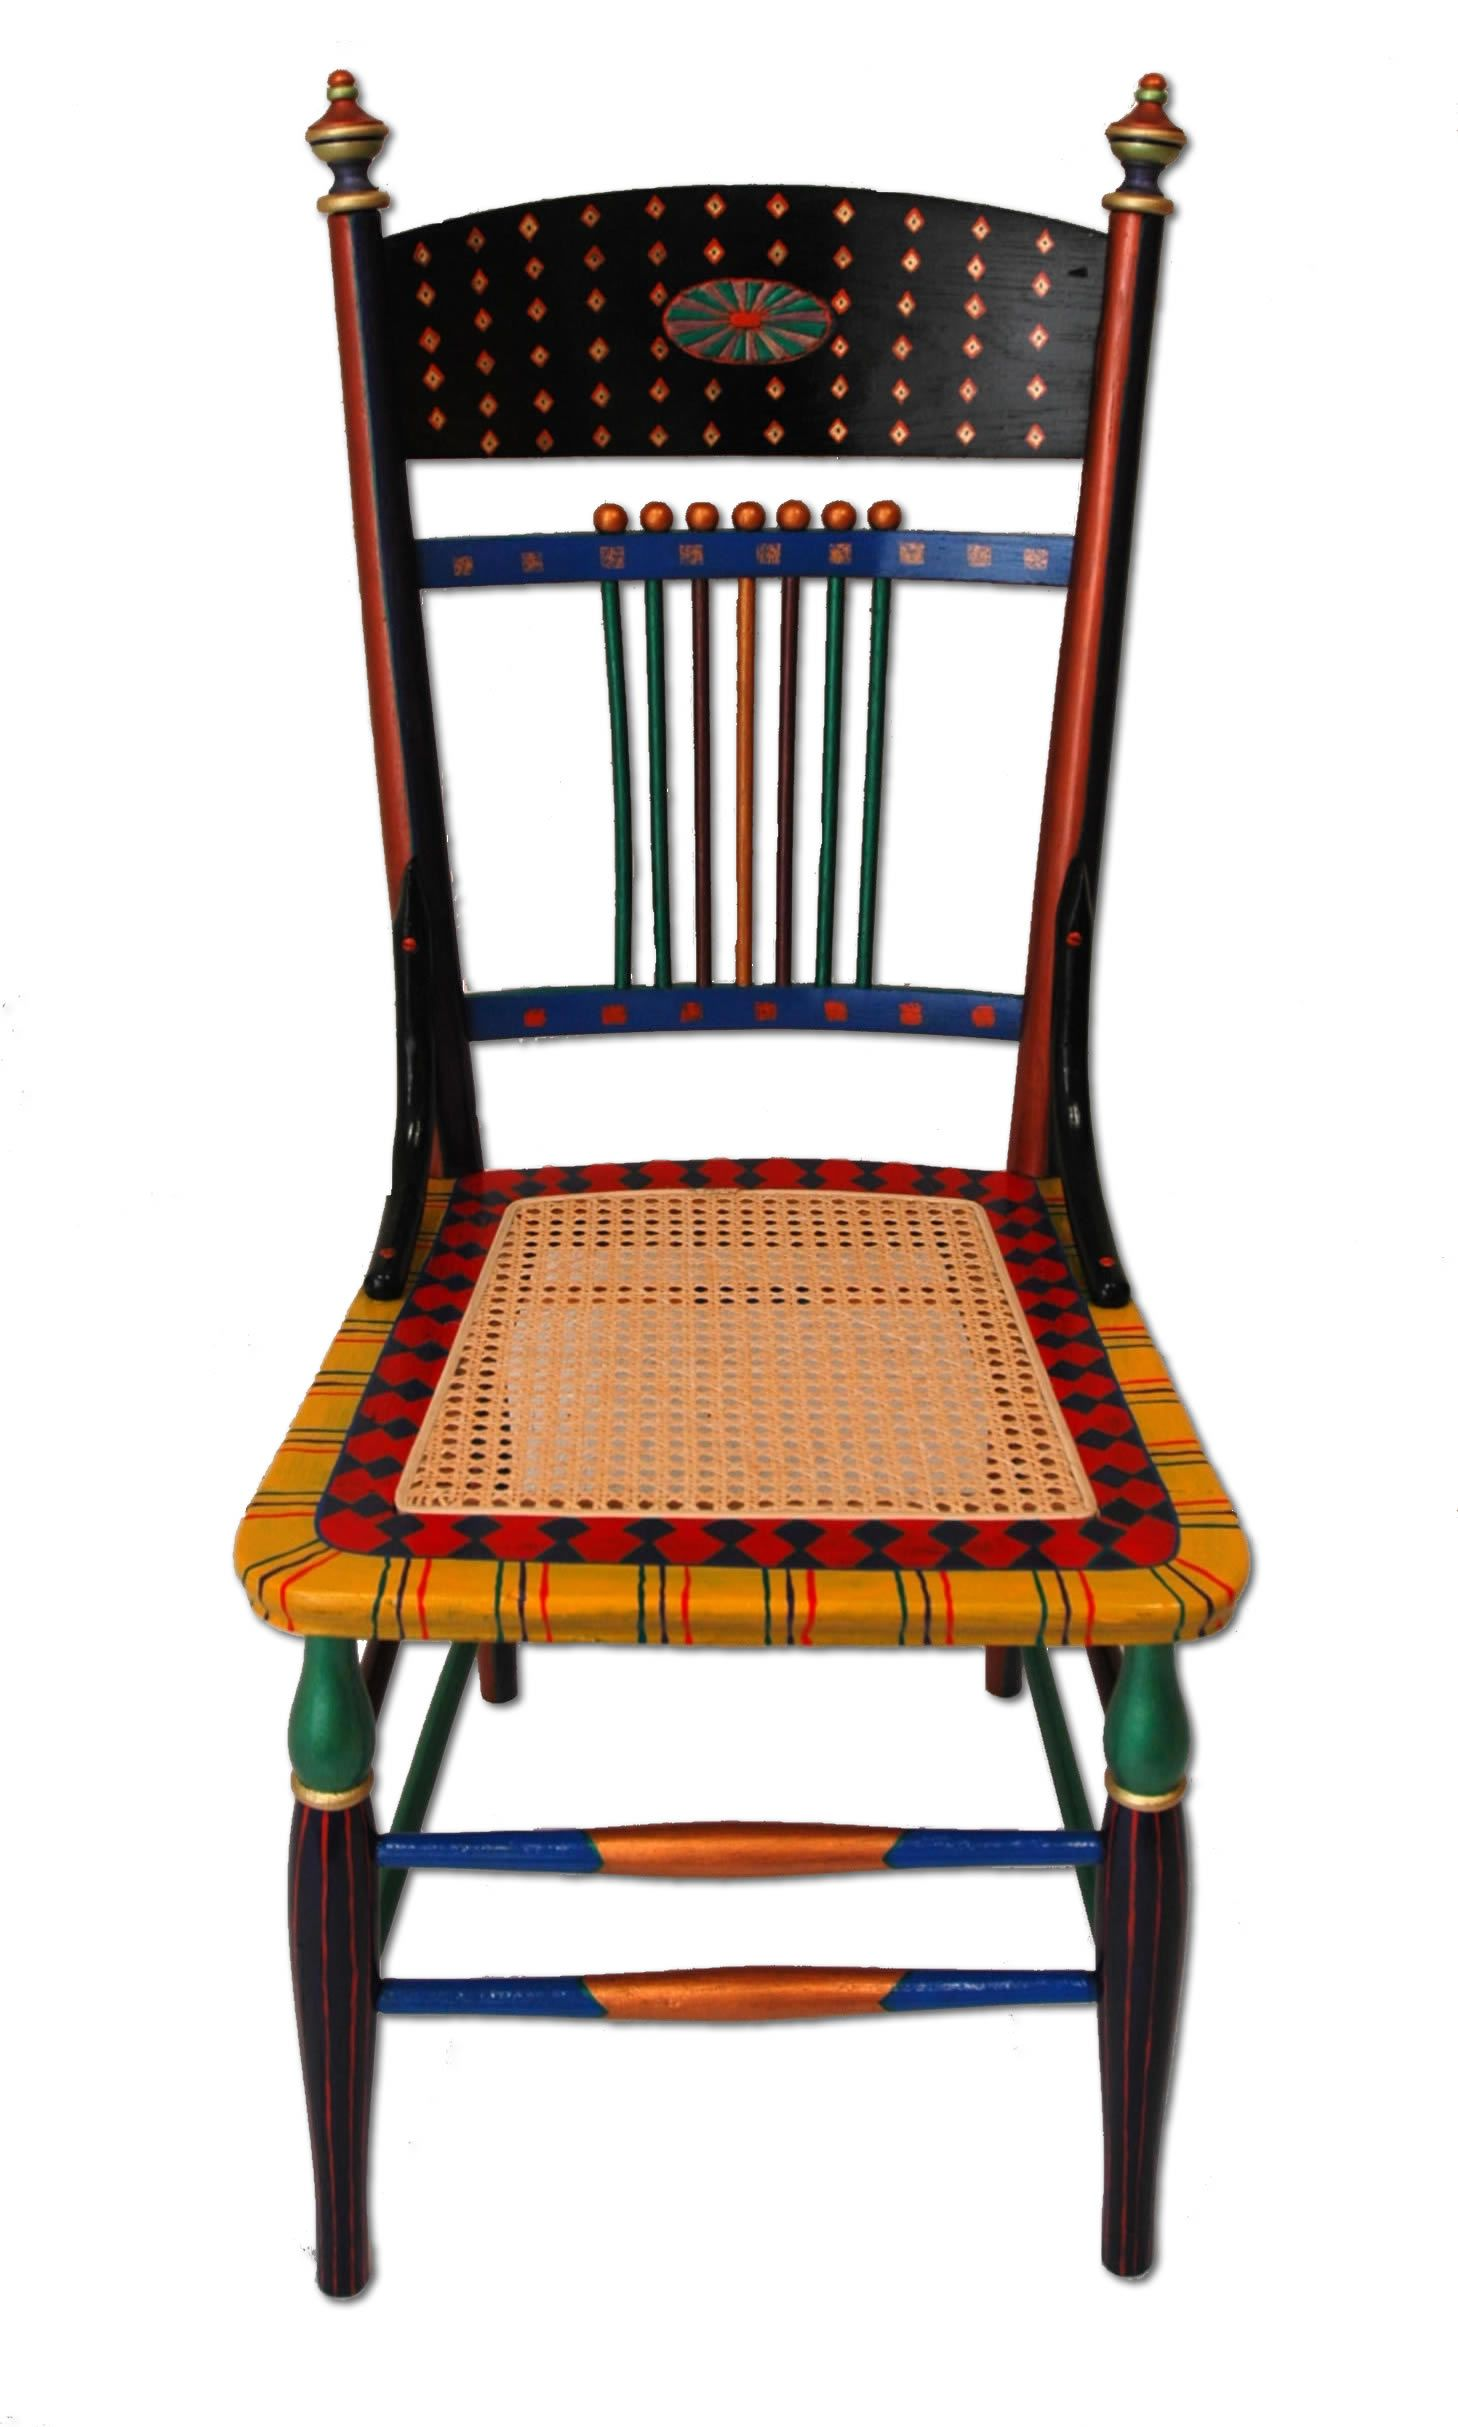 Superbe Hand Painted Chairs | Custom Hand Painted Furniture With A Bright, Happy,  Whimsical Style